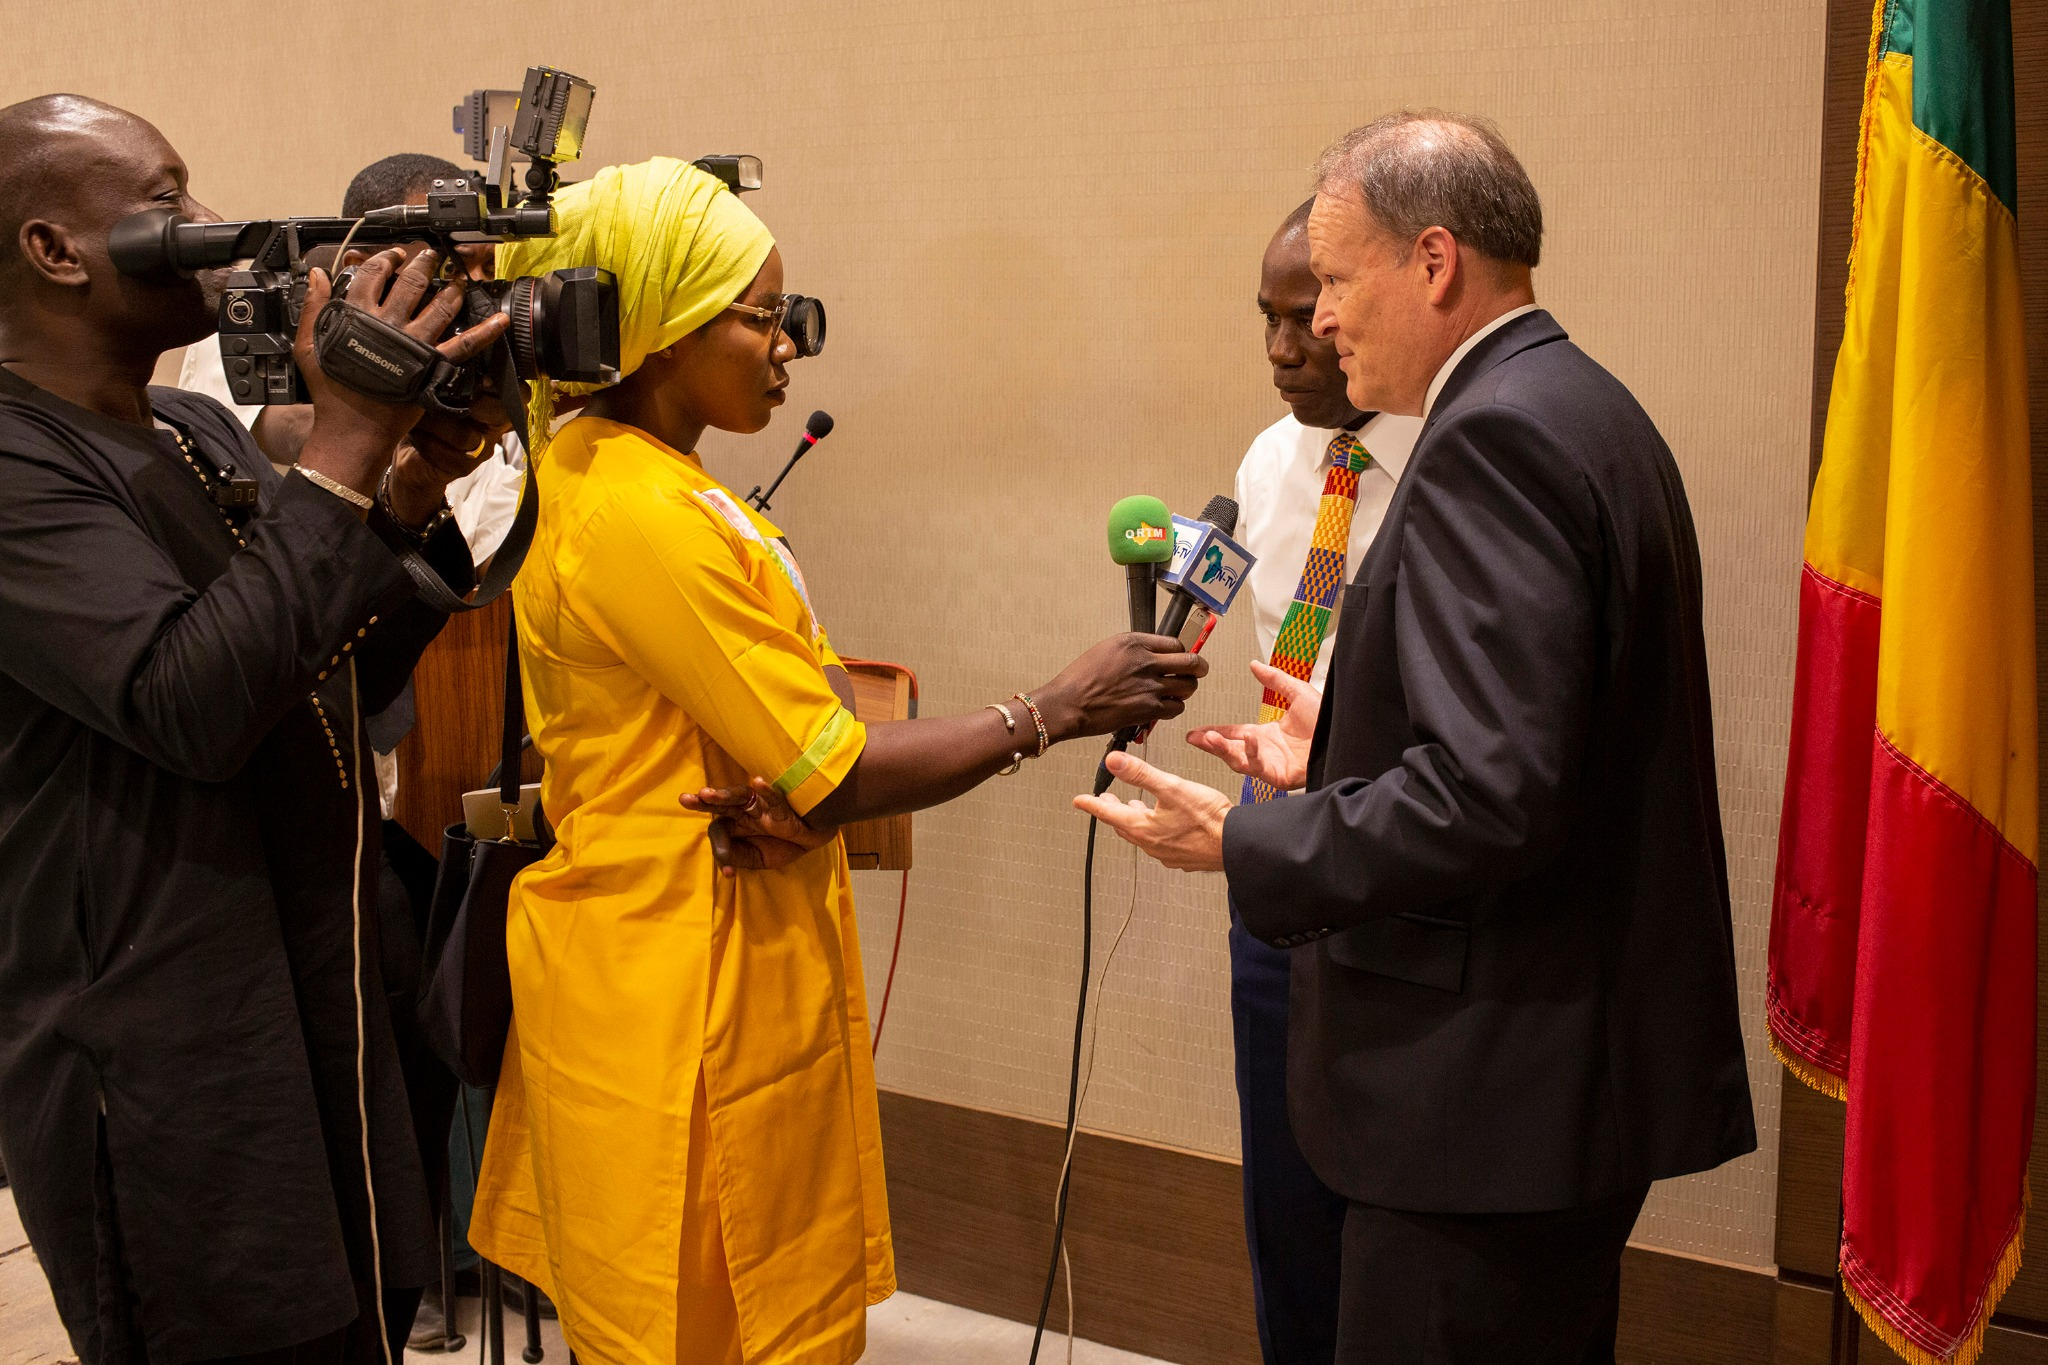 Elder Marcus B. Nash, General Authority Seventy and president of the Africa West Area, speaks to reporters after the meeting on Sept. 12, 2019, in Mali.